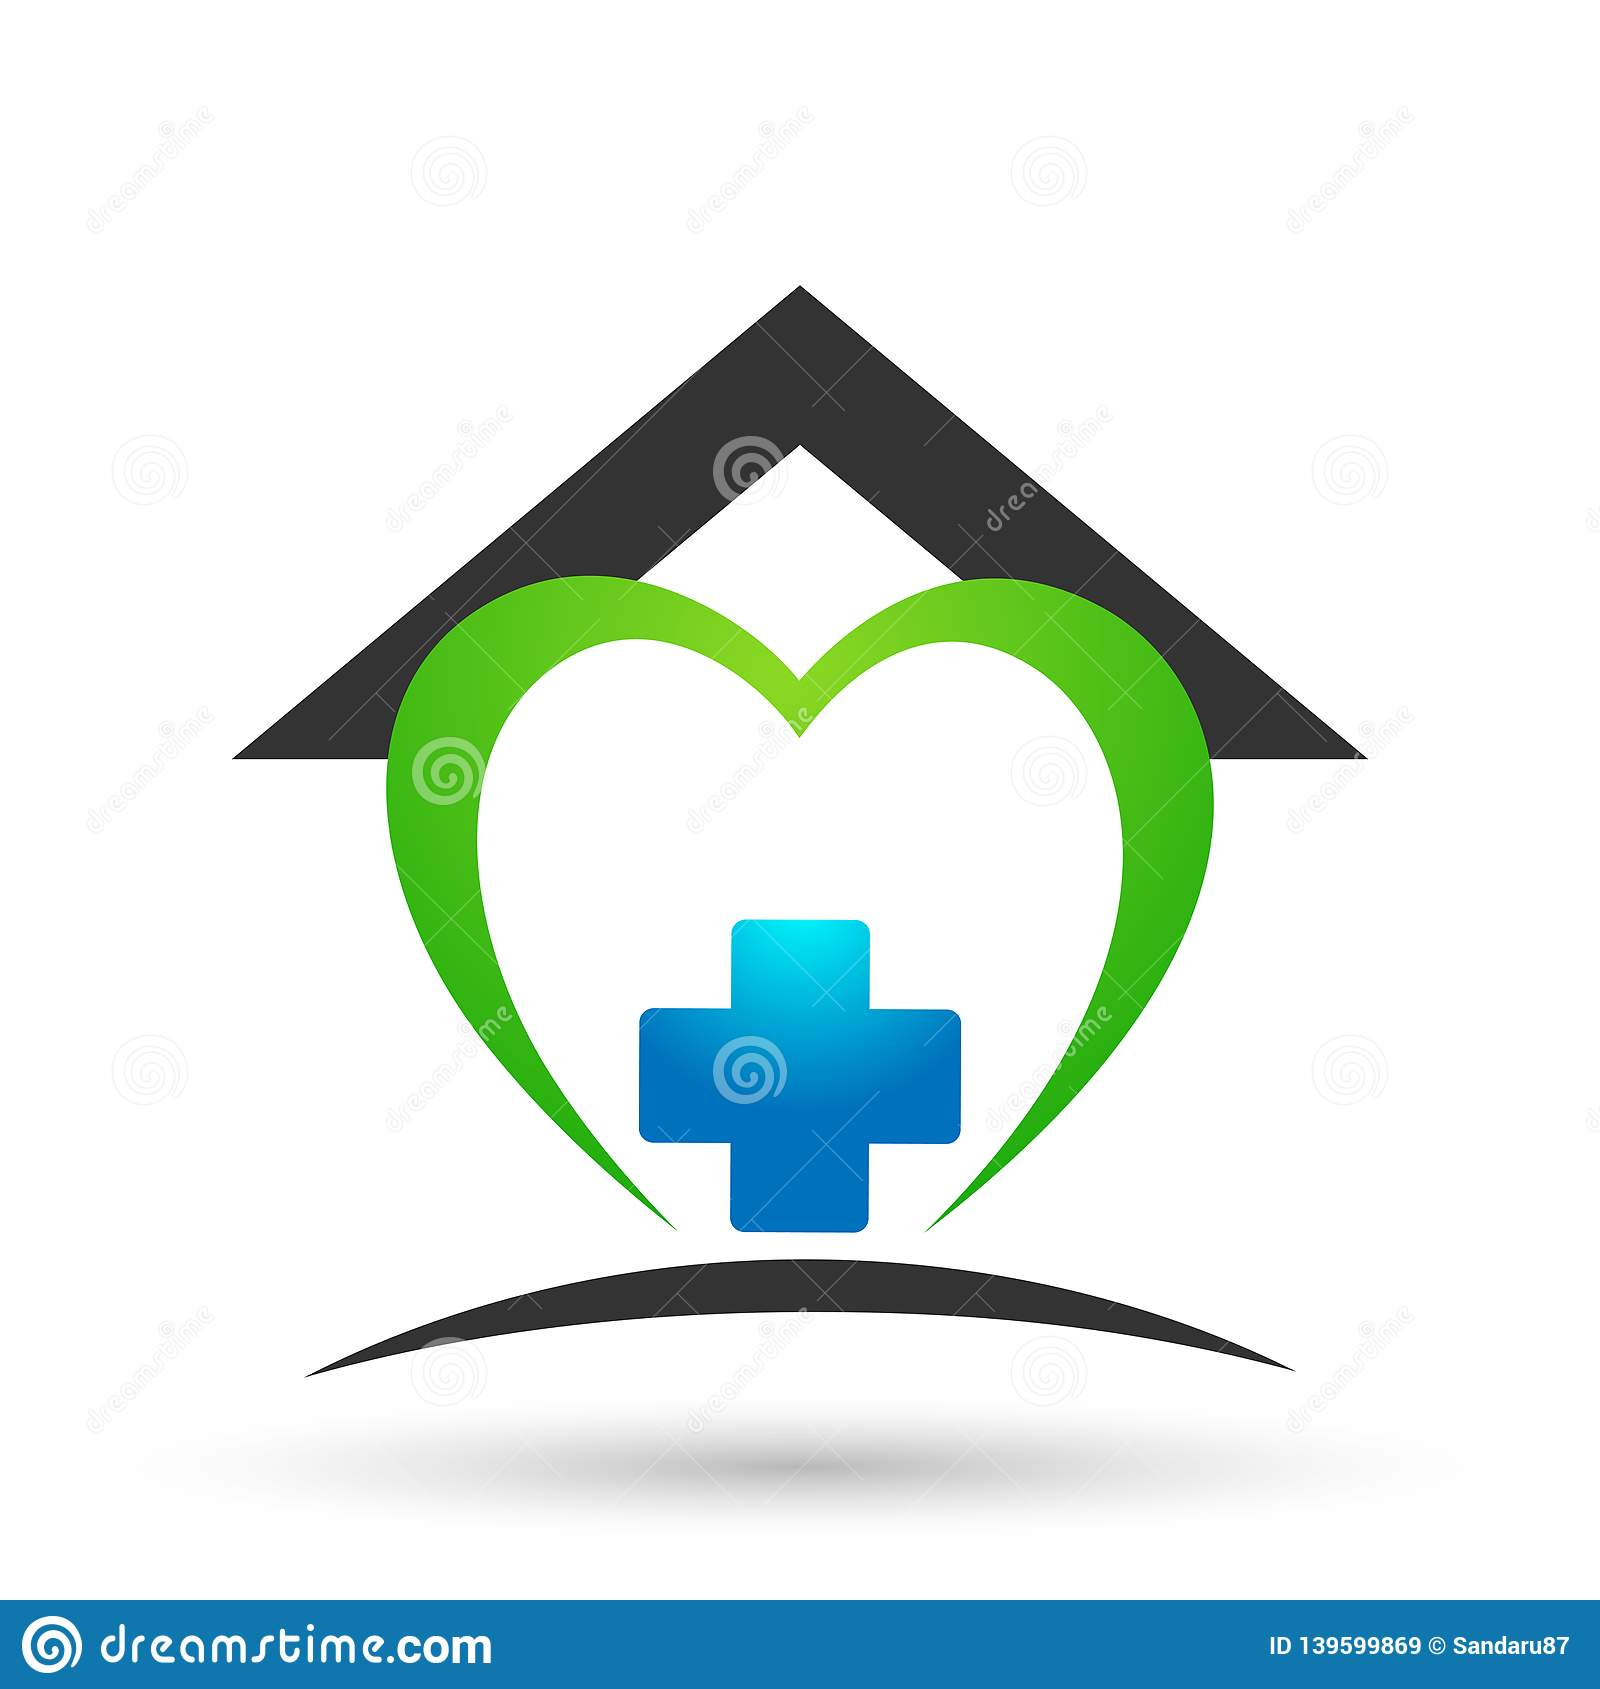 Remarkable Medical Health Care Heart Clinic Home House Cross People Download Free Architecture Designs Scobabritishbridgeorg